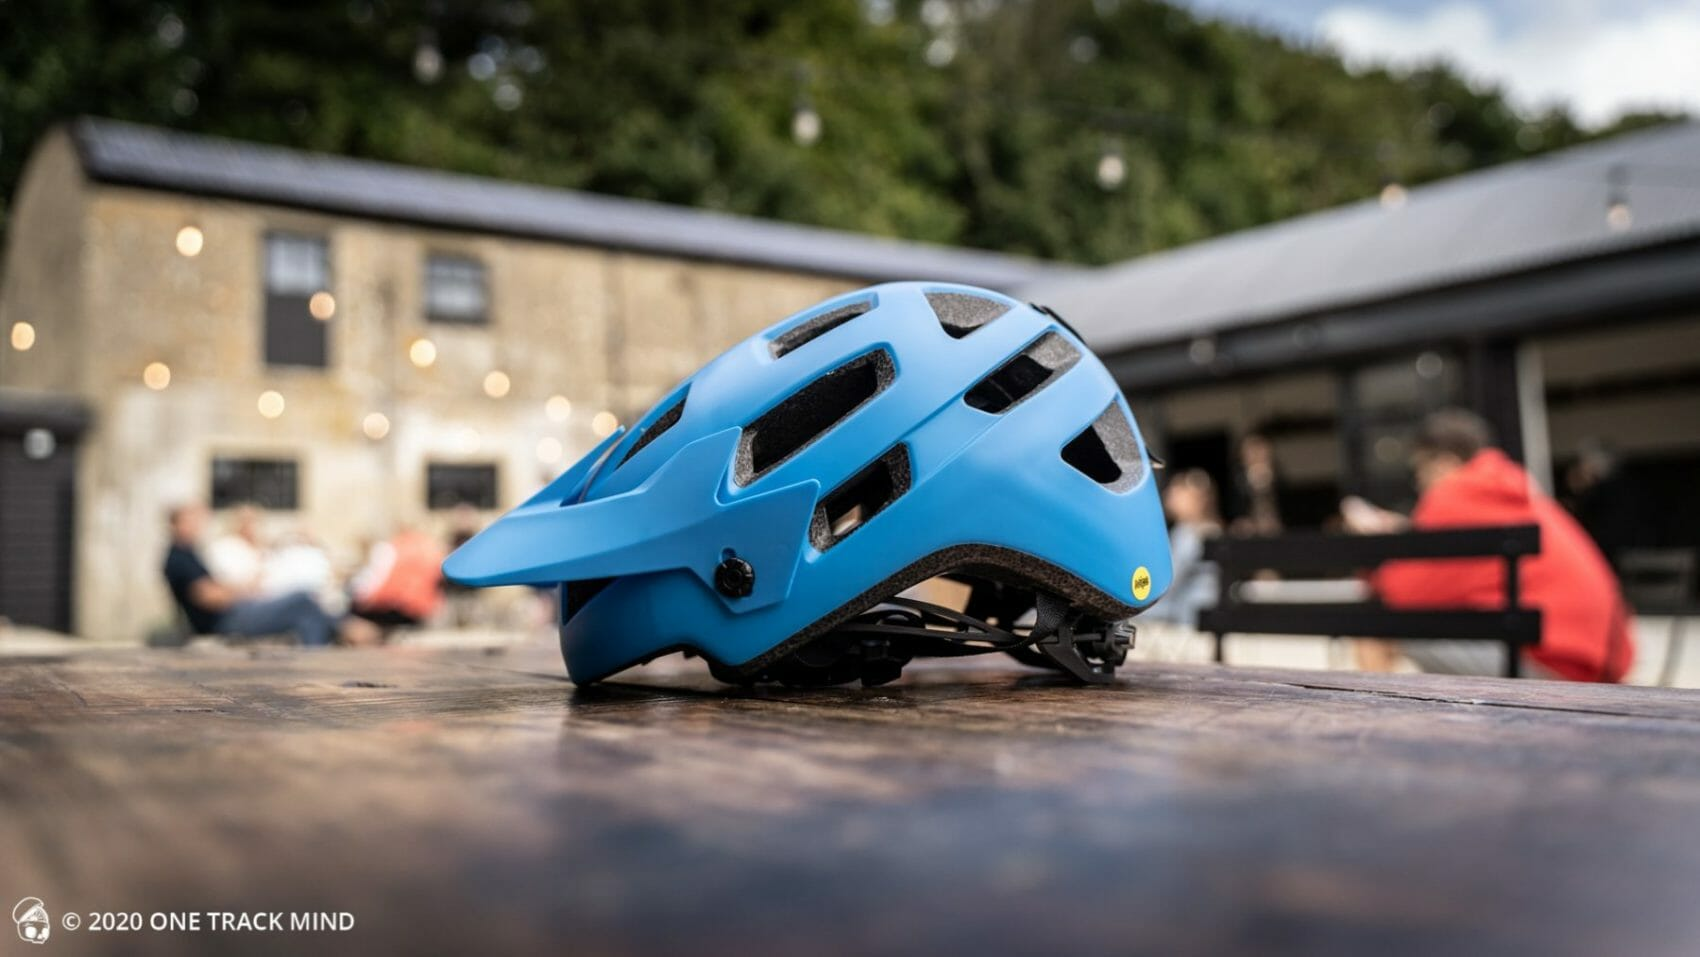 Giant Rail SX MIPS Helmet Review